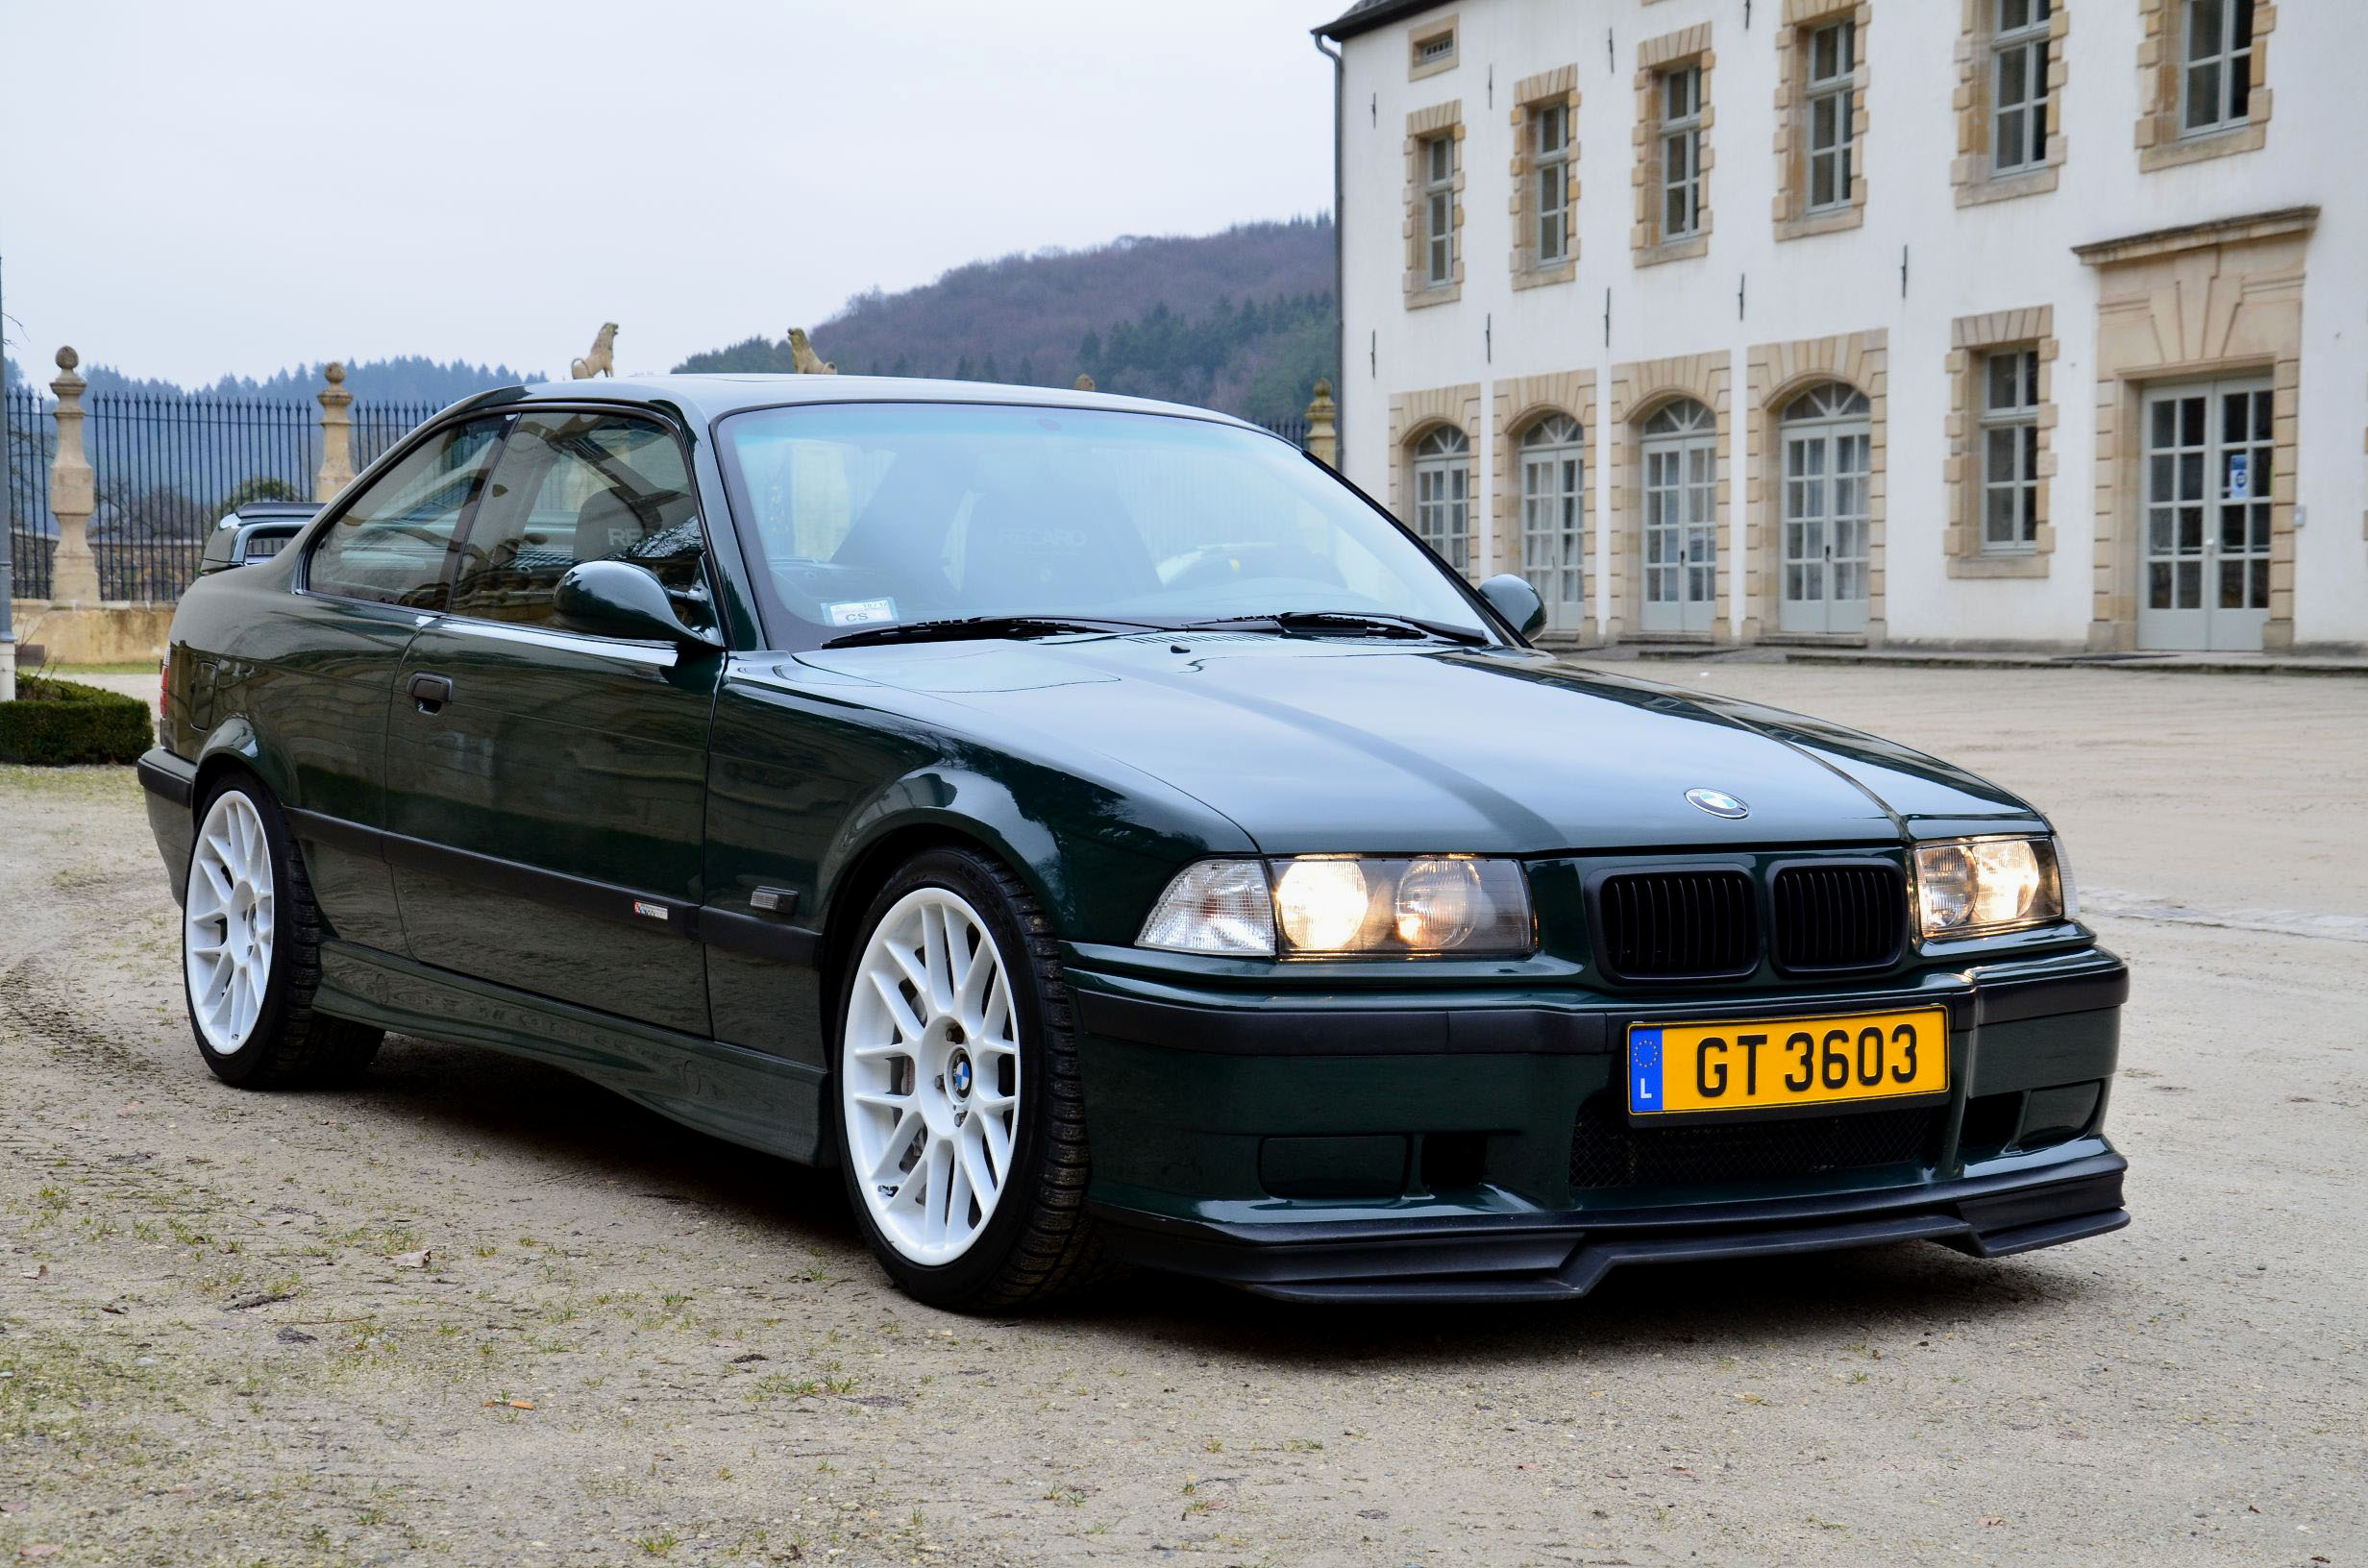 My Toy E36 M3 Gt Twin Turbo Bmw M5 Forum And M6 Forums